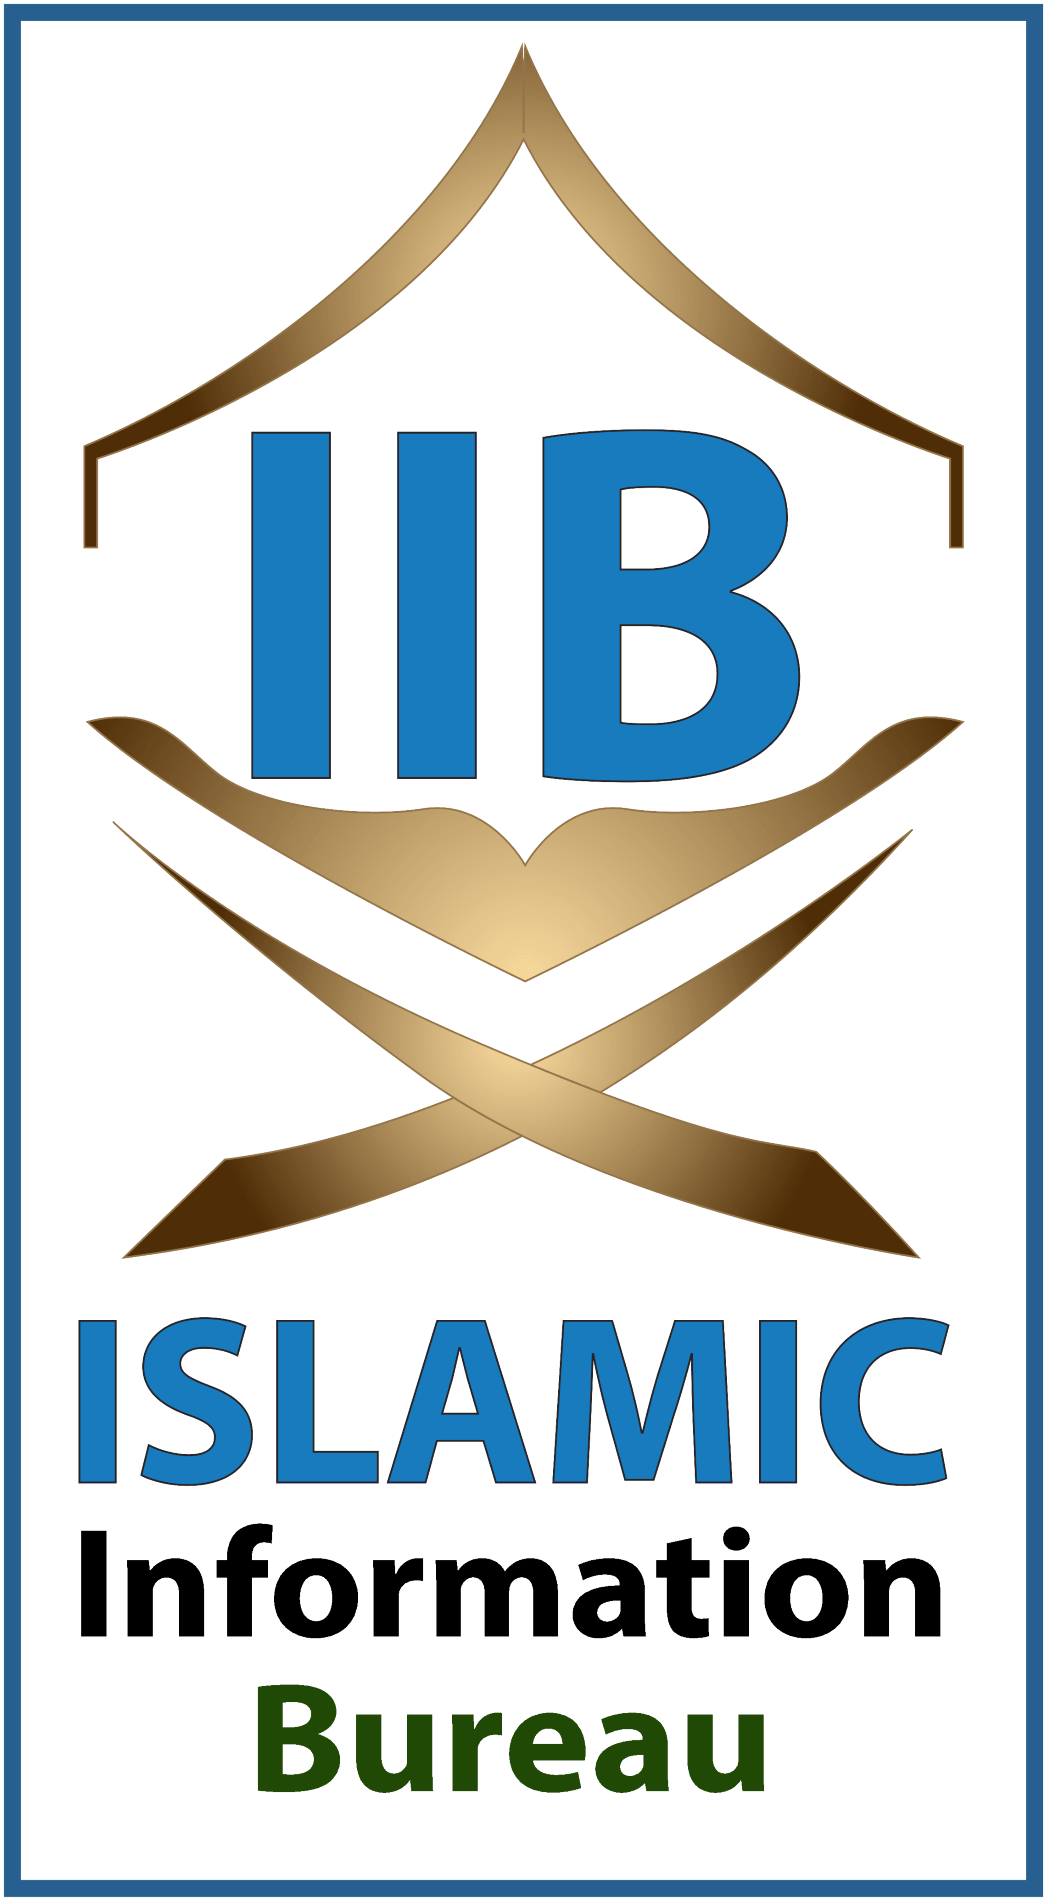 Islamic Information Bureau